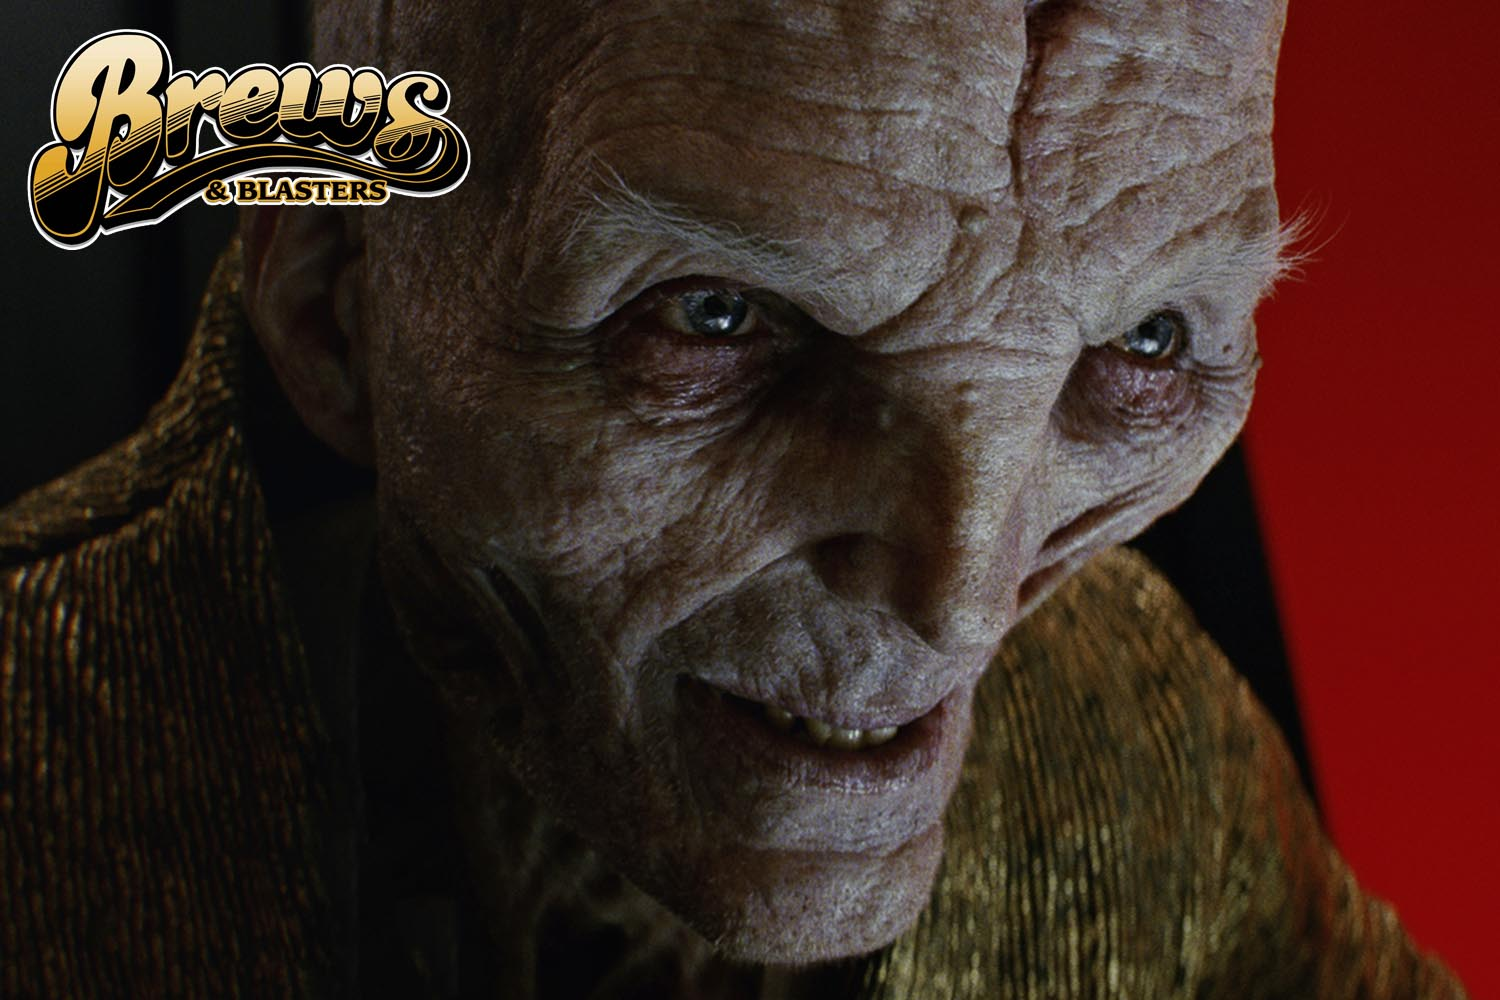 From a Sam & Joe's special to a very special look at our man Snoke, the only thing that's not on our plate in this episode is a boring time! Let's get weird, friends! This week we're analyzing Snoke's soft face, telling legendary stories from Dolph Lundgren, analyzing the Star Wars film delays, and a heaping bowlful of food talk and NeedEm GotEm. Let's go, Warheads! The Star Wars party starts NOW! It's time for Brews and Blasters.